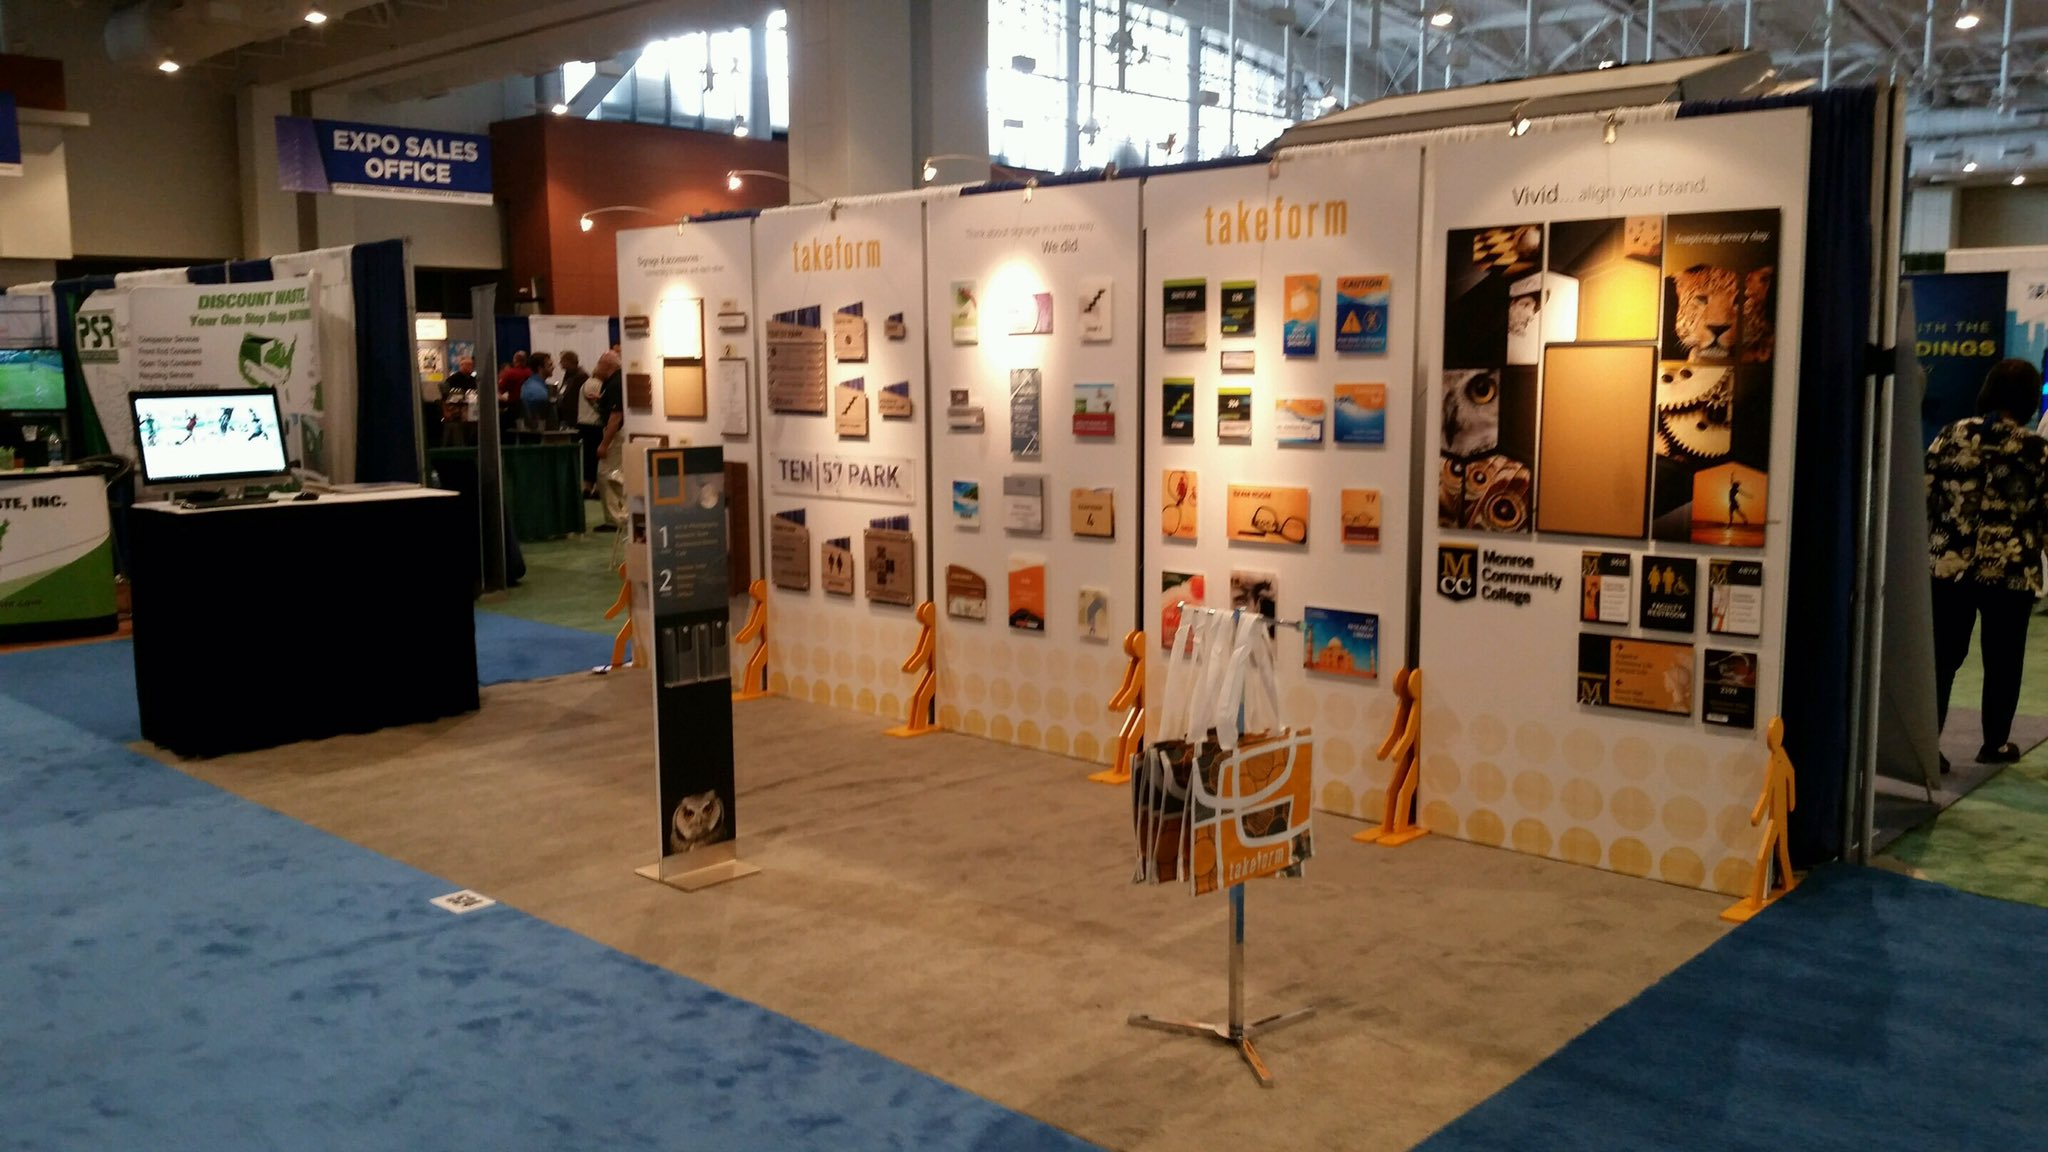 Takeform  Last day @BOMAIntl today in #nashville. Stop by our booth space 534. #BOMA2017 #signage #wayfinding https://t.co/ZgD027ZCSH  6/27/17, 12:38 PM